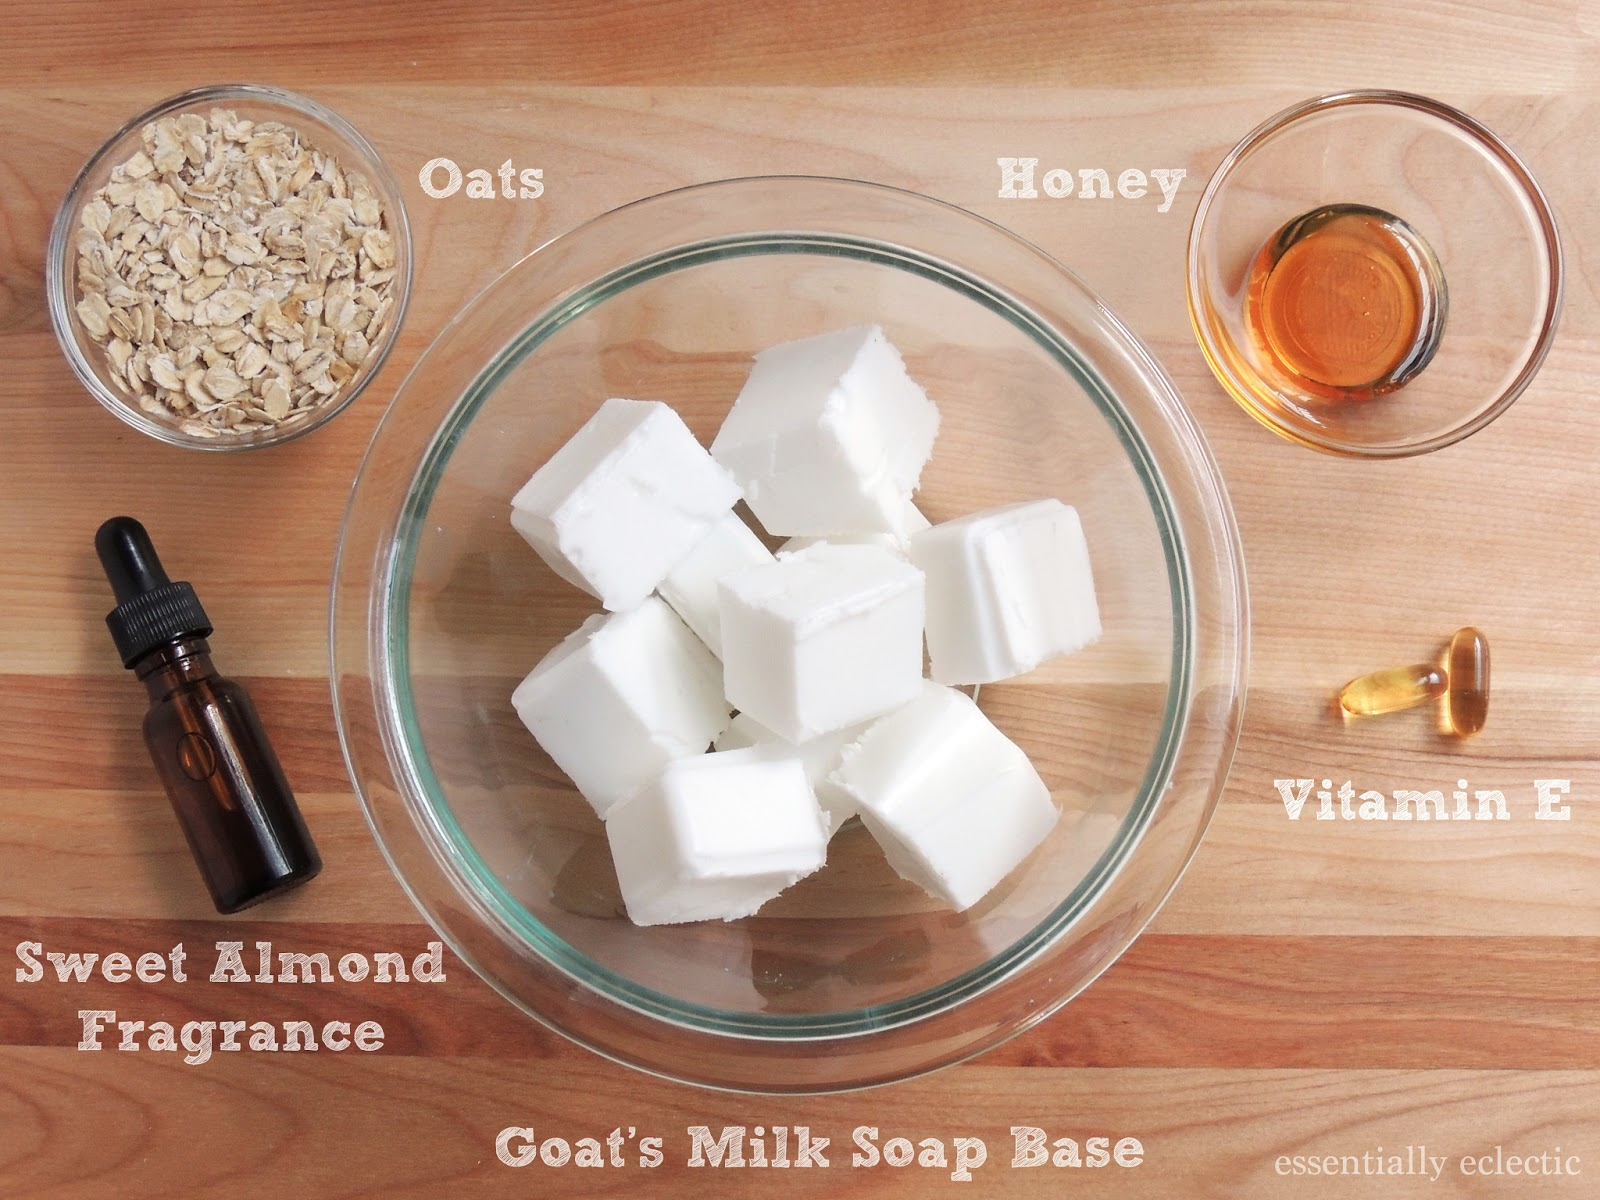 Making your own almond oatmeal goat's milk soap is easy with melt-and-pour